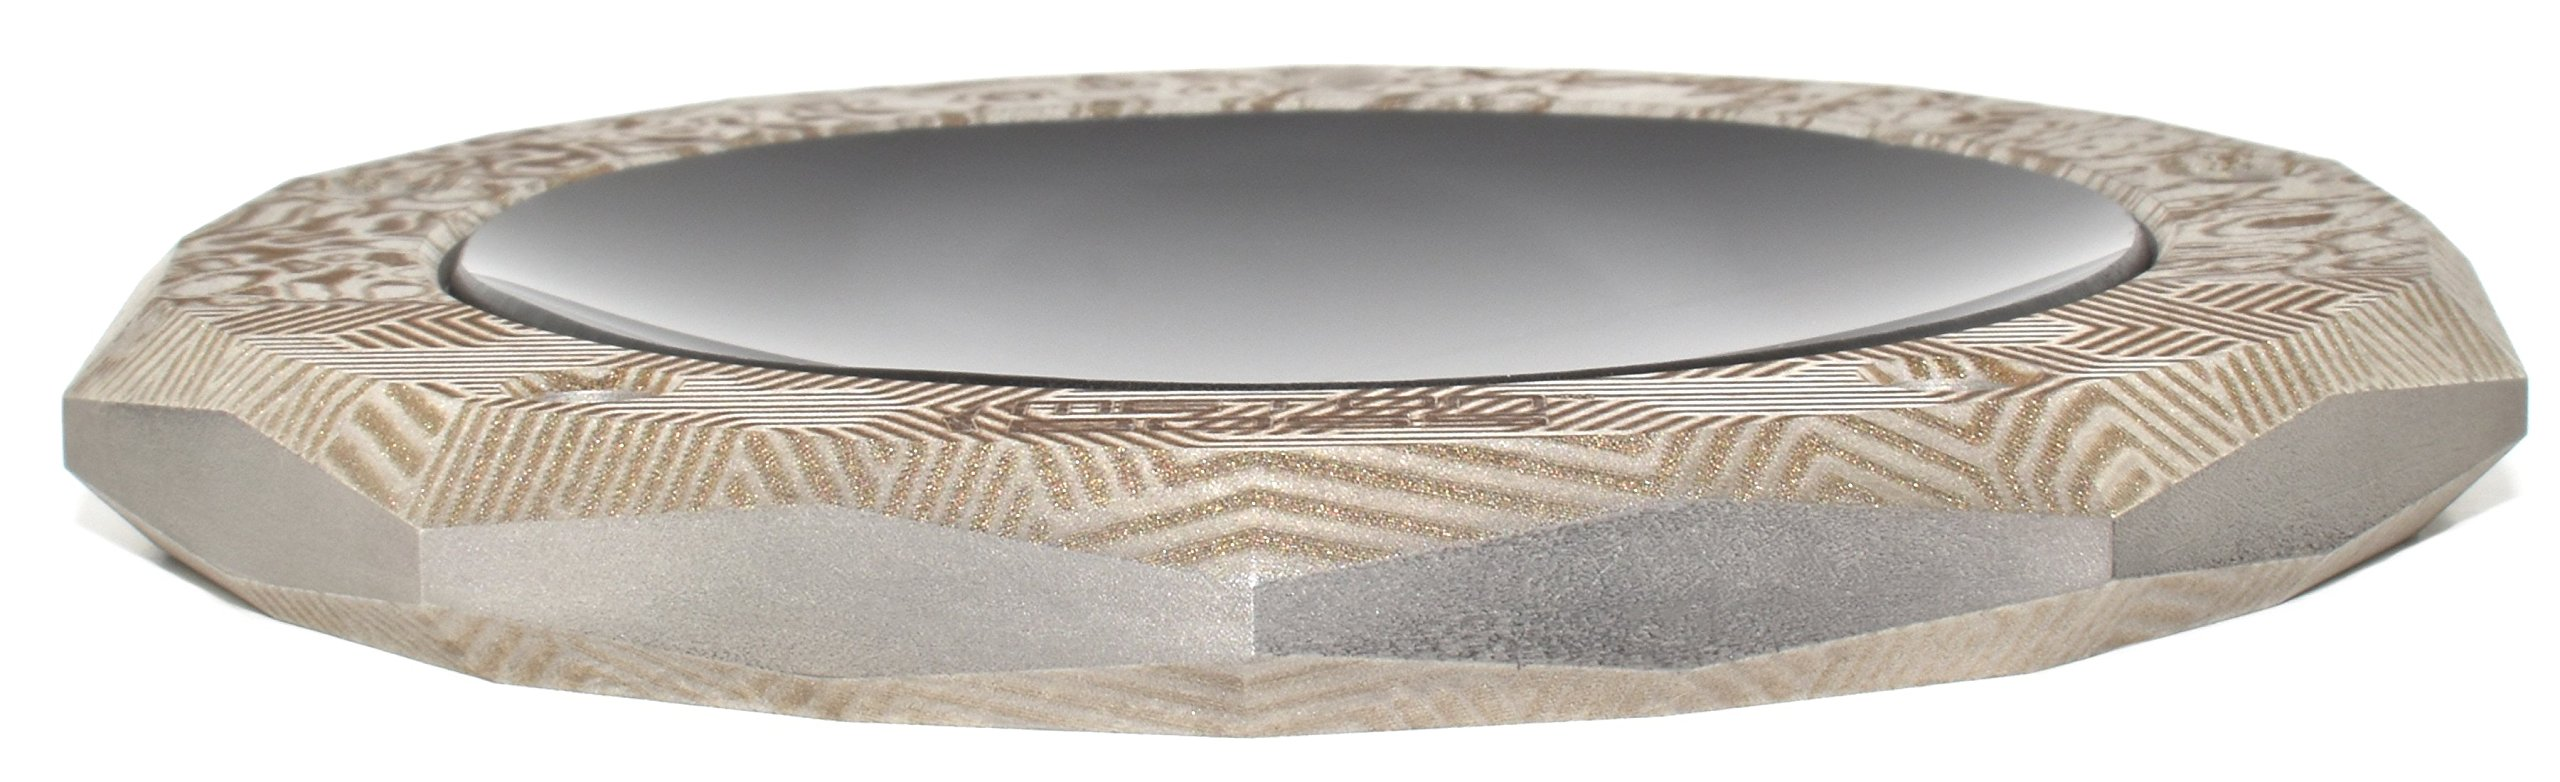 MetonBoss MOKUME Summer All-in-One S. Steel Spinning Top Base and Dock - Precision Designed Durable Gift - Made with Stainless Steel (Custom Lasered Etched) by MetonBoss (Image #3)